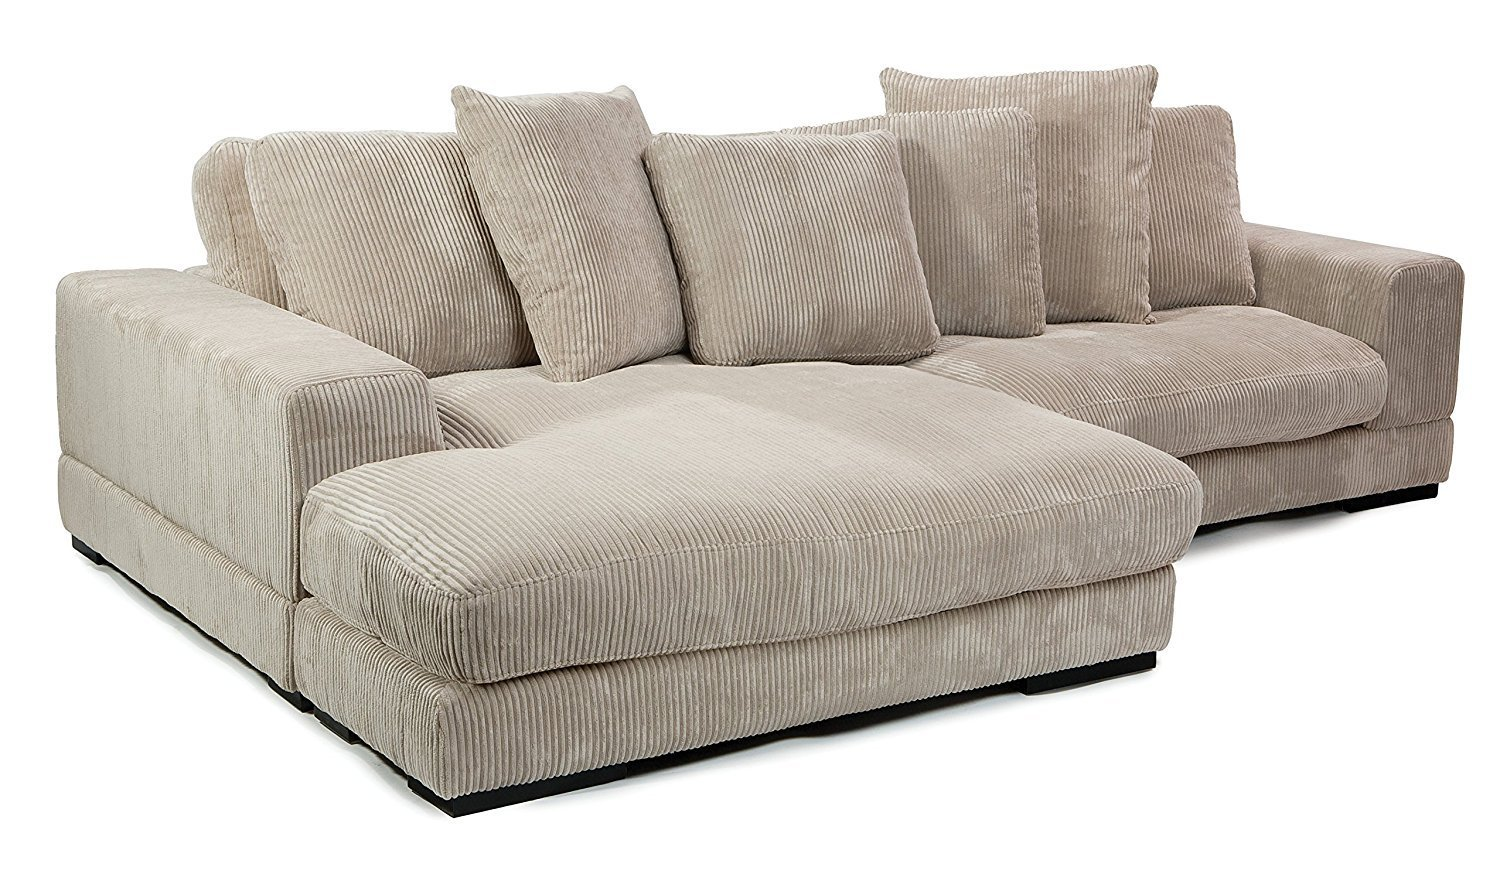 Moe S Home Collection Plunge Reversible Sectional Sofa